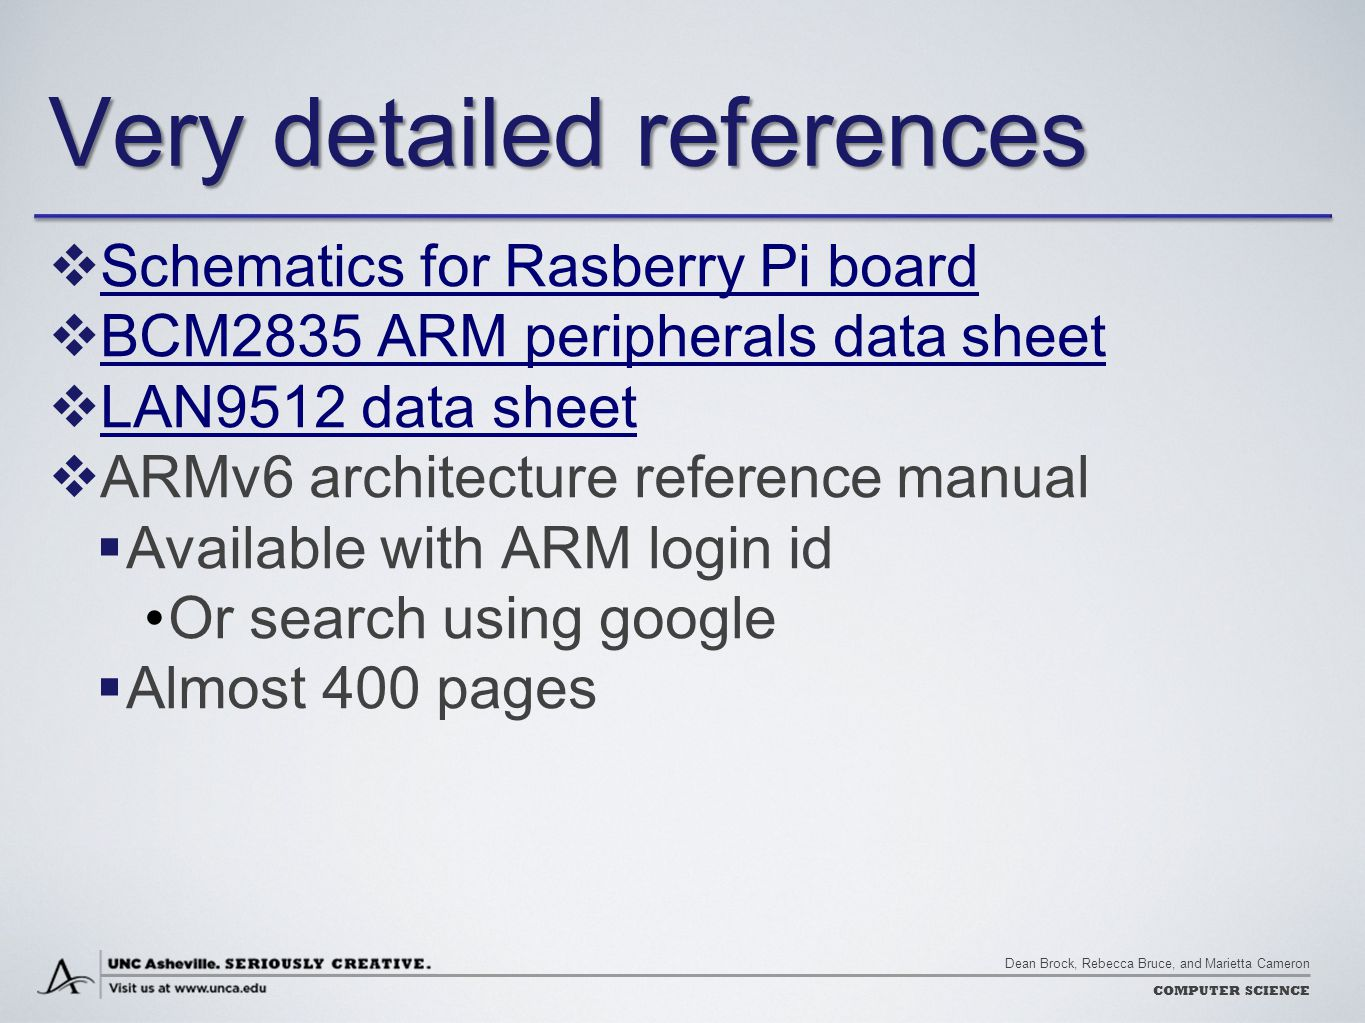 Dean Brock, Rebecca Bruce, and Marietta Cameron COMPUTER SCIENCE Very detailed references  Schematics for Rasberry Pi board Schematics for Rasberry P